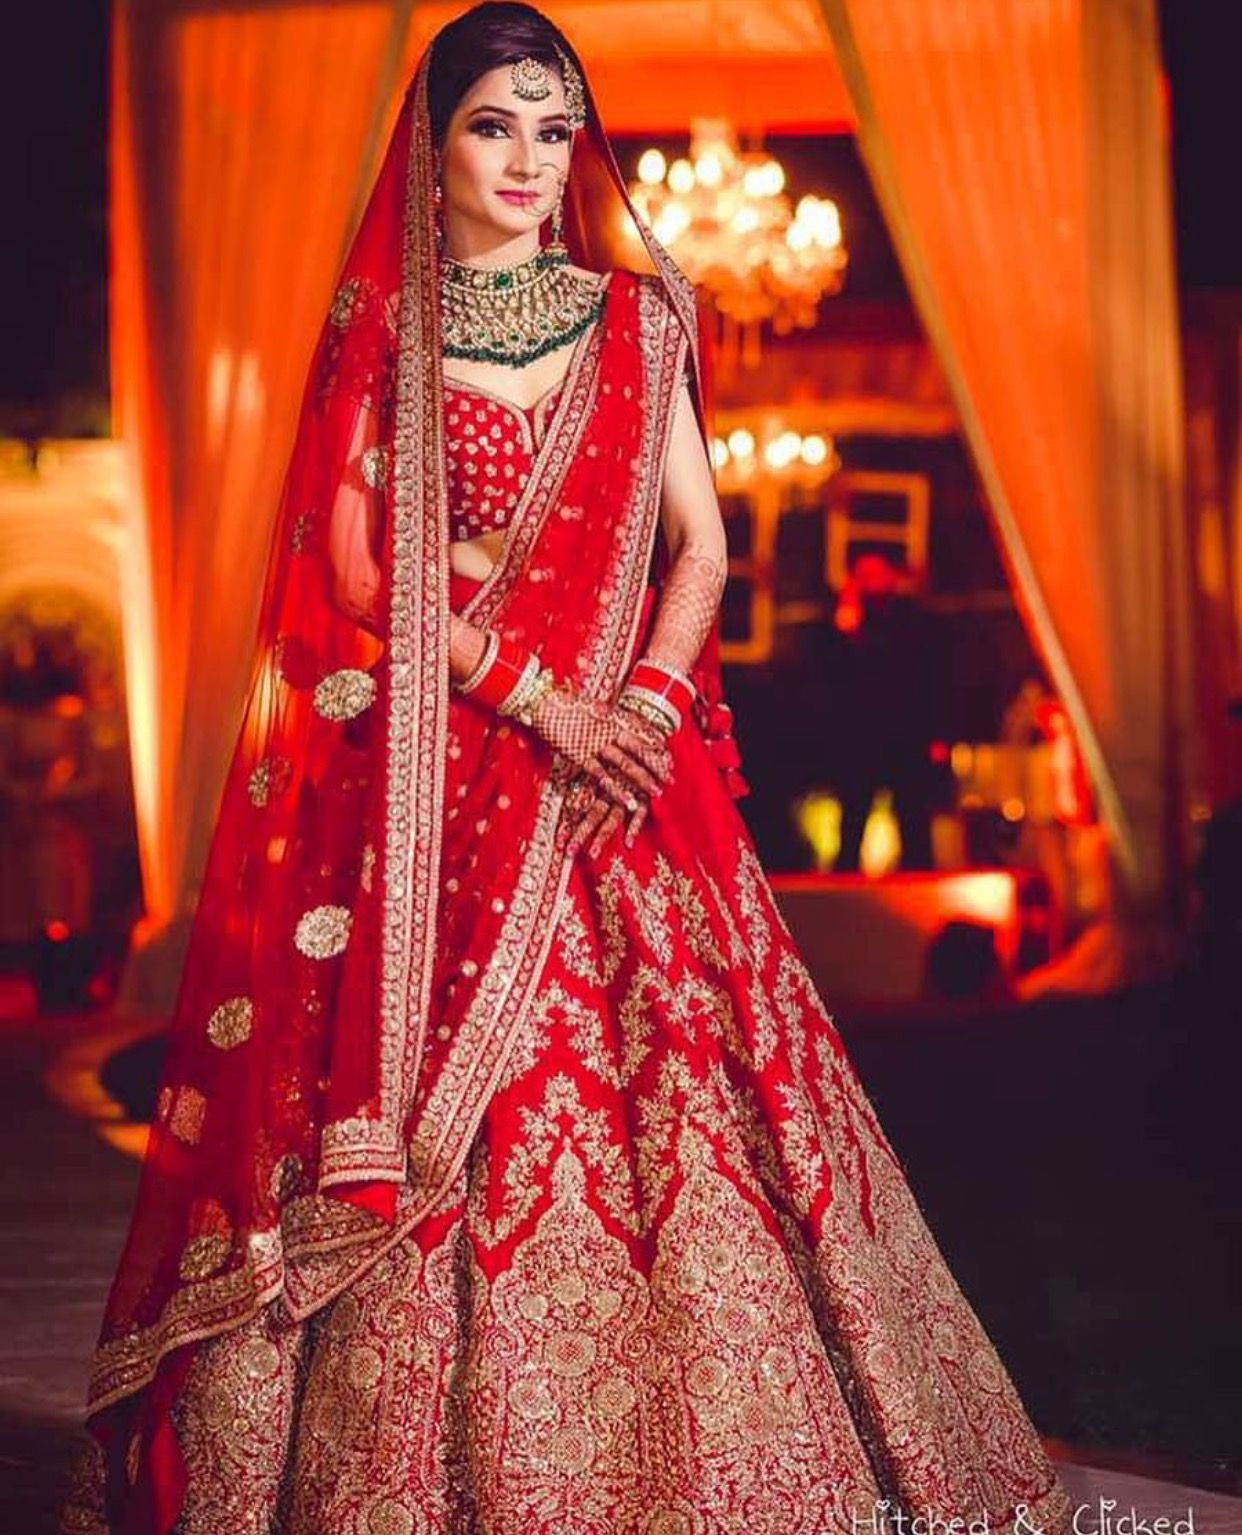 f683d91734 Custom made lehengas Inquiries➡ nivetasfashion@gmail.com whatsapp + 917696747289 Direct from INDIA Nivetas Design Studio We ship worldwide 🌎  At very ...